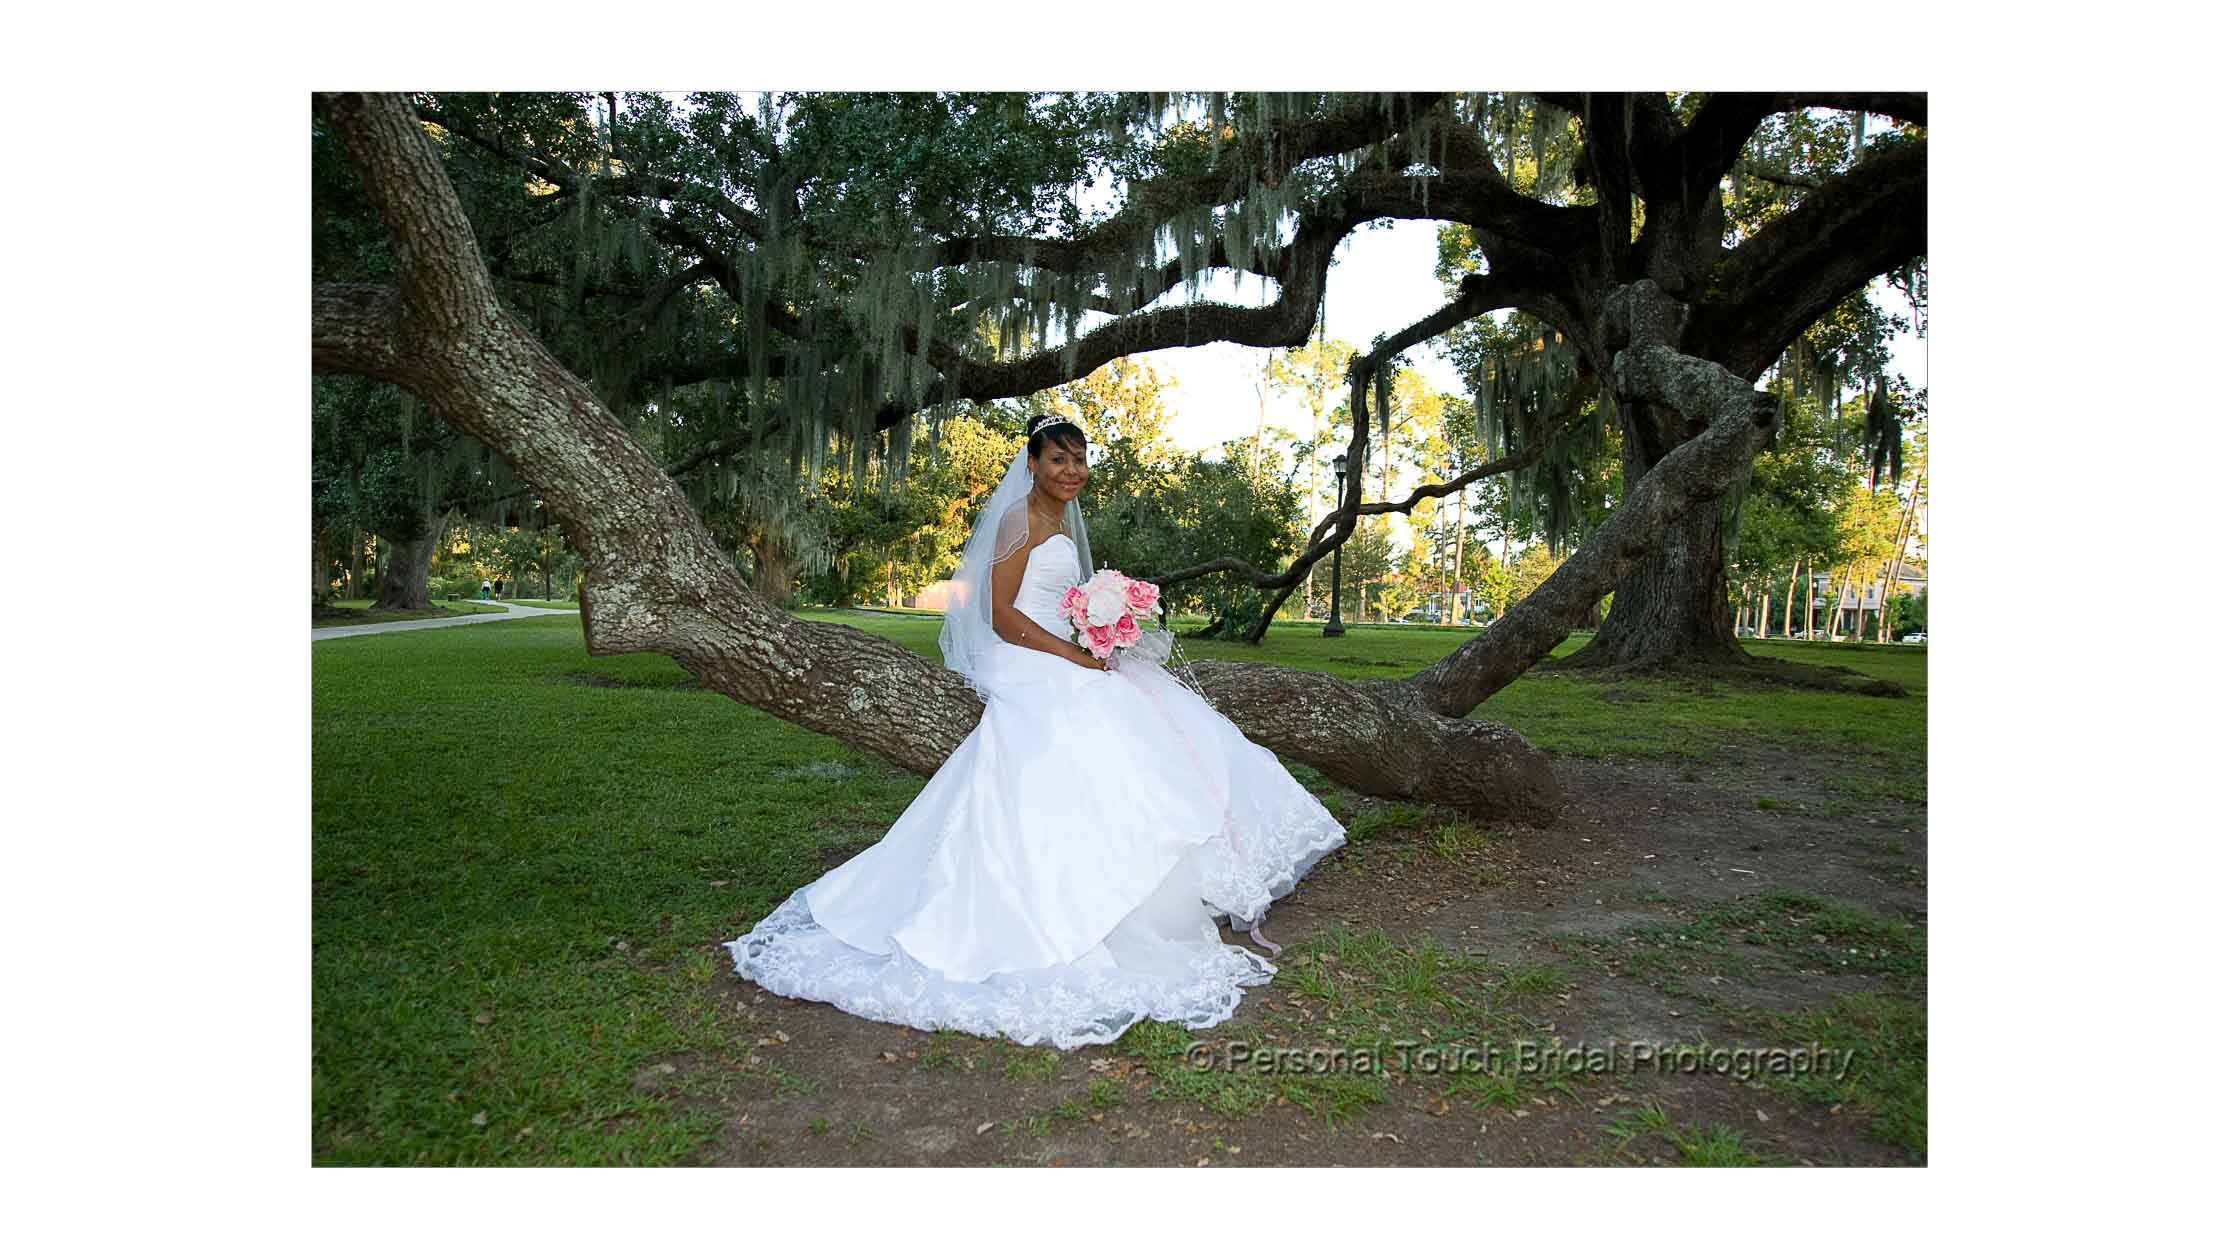 Personal Touch Divi Bridals-11